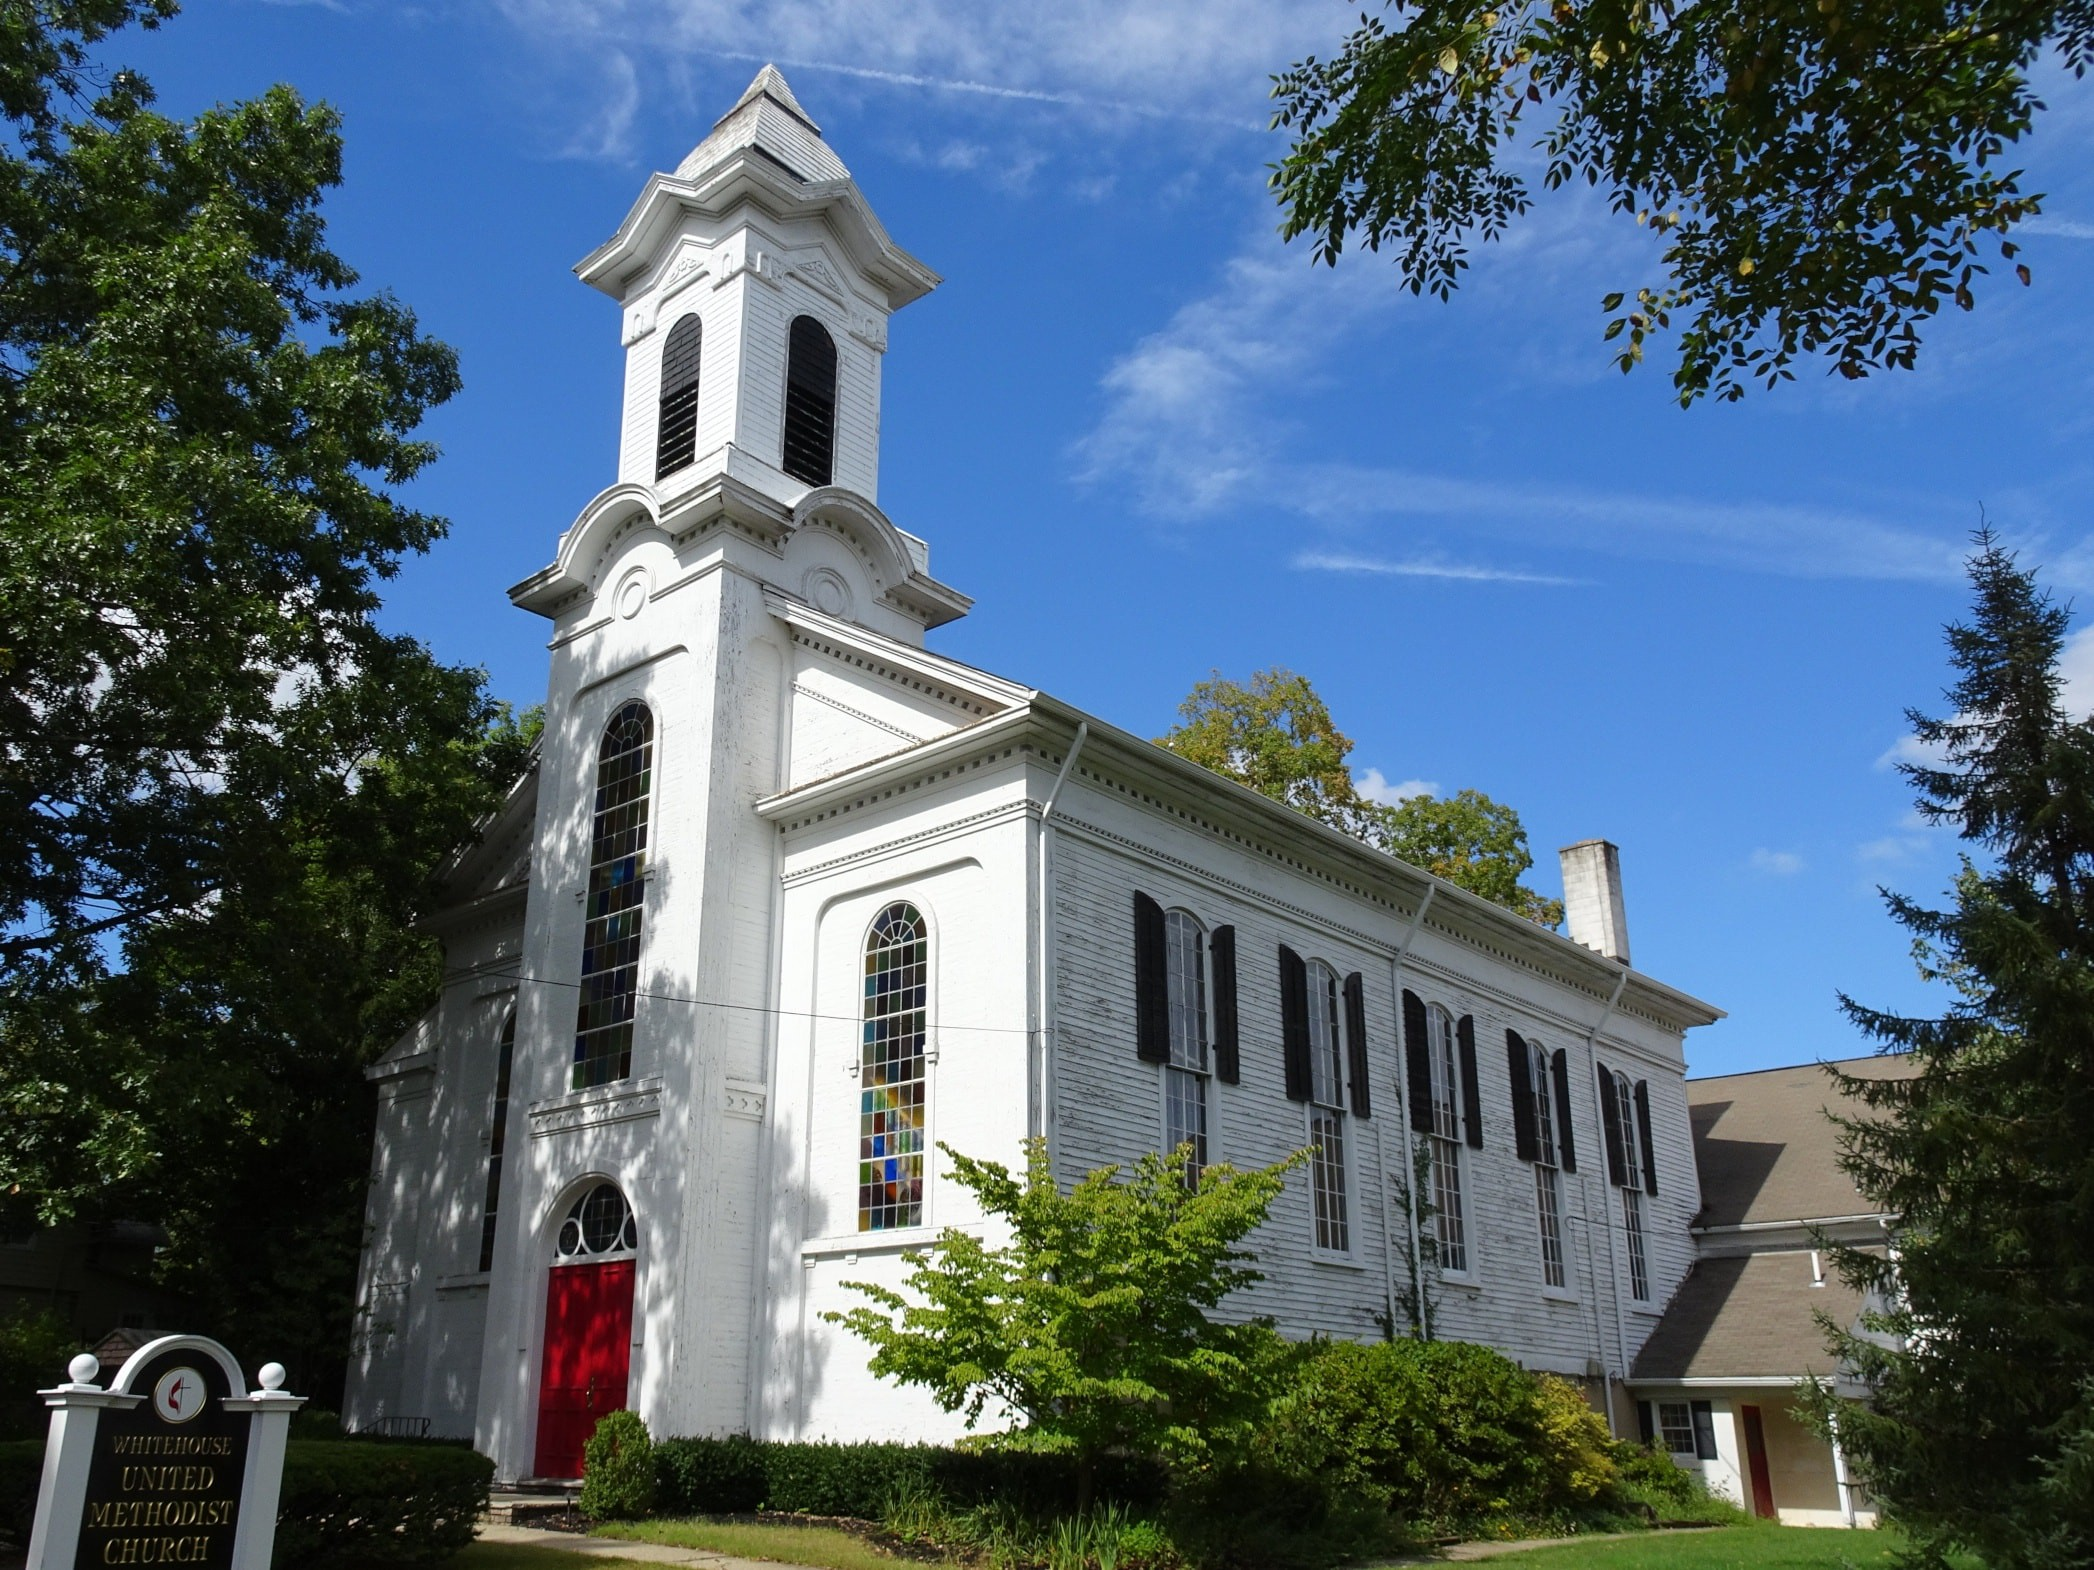 The 10 Most Beautiful Cathedrals and Churches in Northern New Jersey